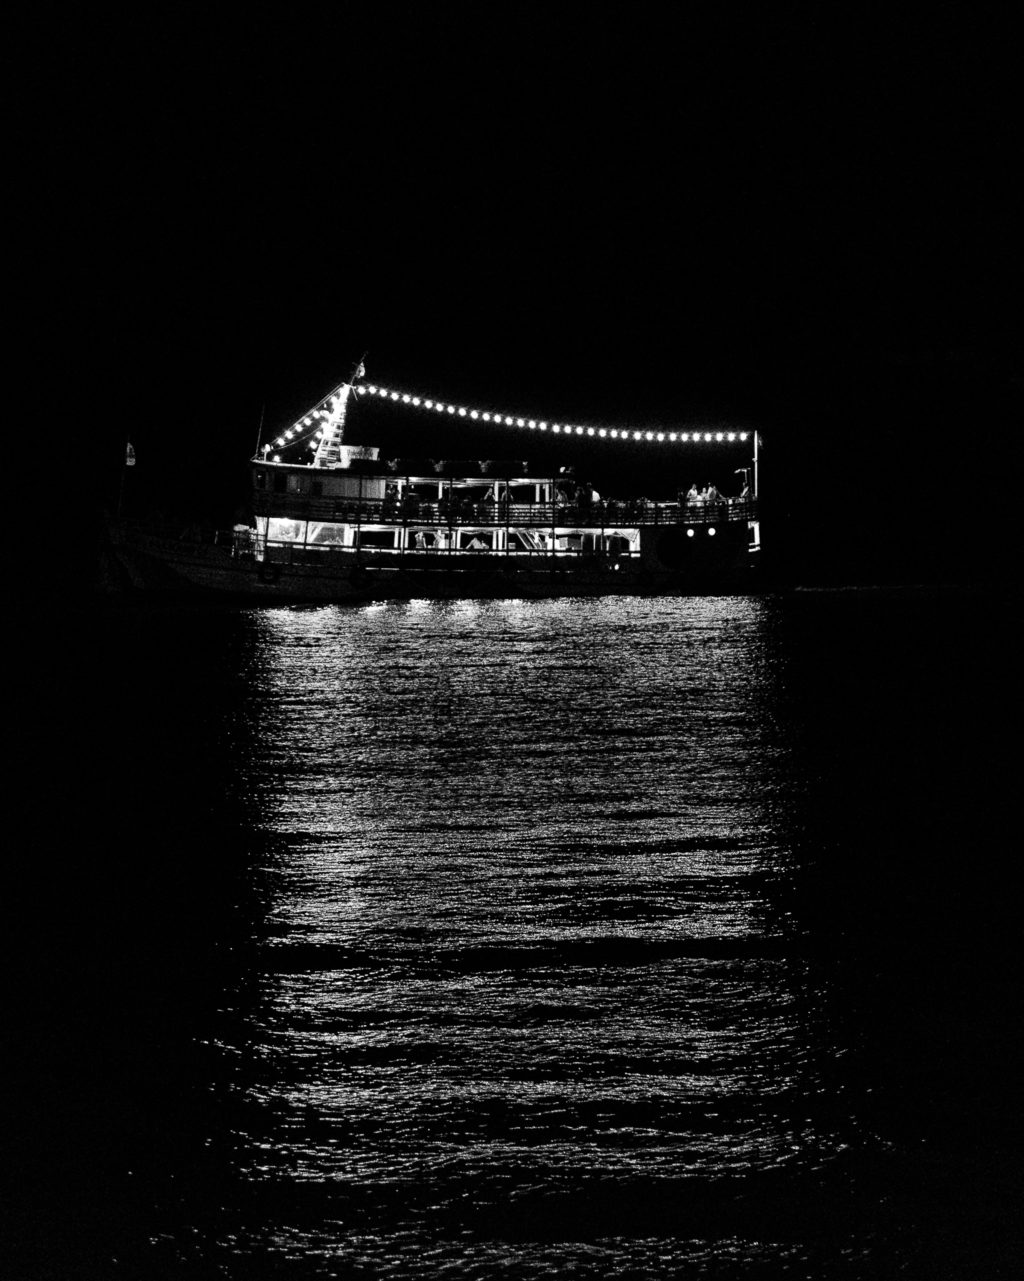 River with boat in black and white